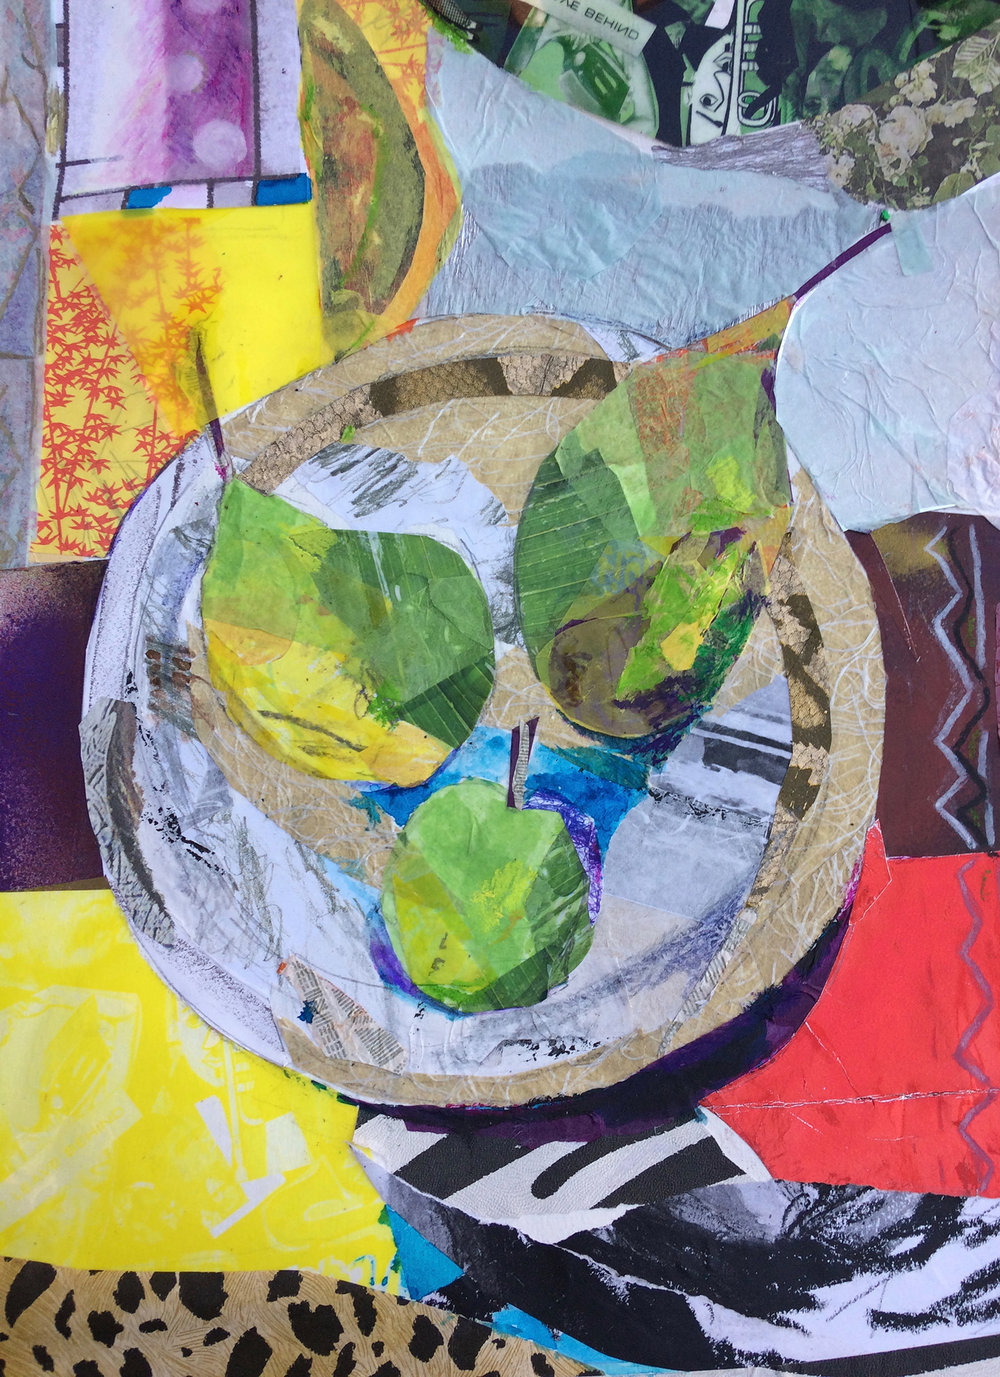 emma-lindsay-mixed-media-still-life.jpg